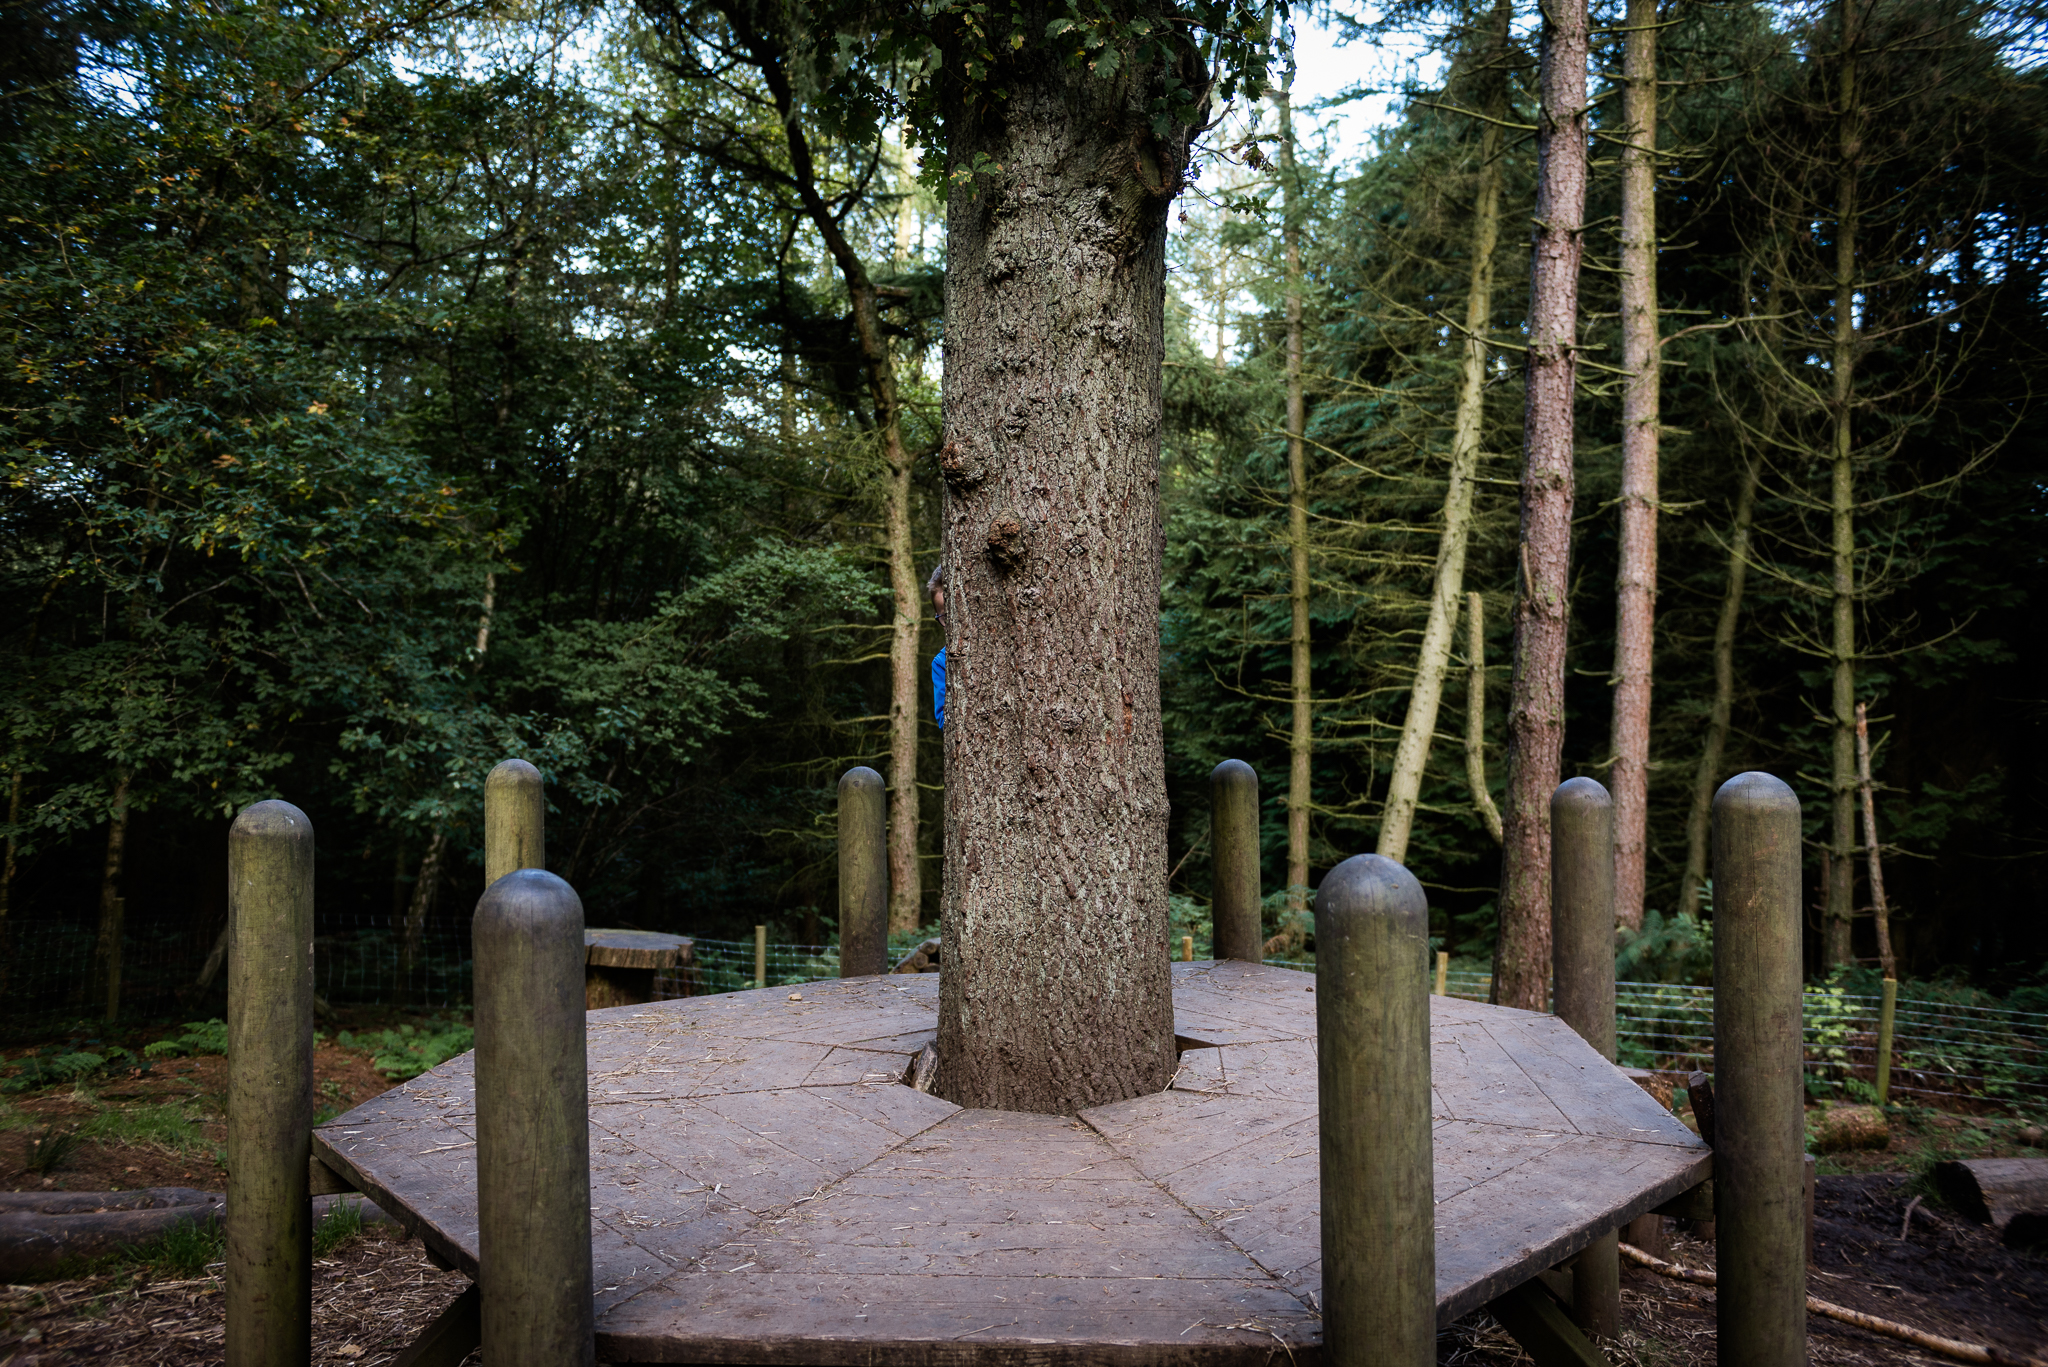 Documentary Family Photography at Clent Hills, Worcestershire Family Lifestyle Photography Woods Outdoors Trees Flying Kite - Jenny Harper-1.jpg